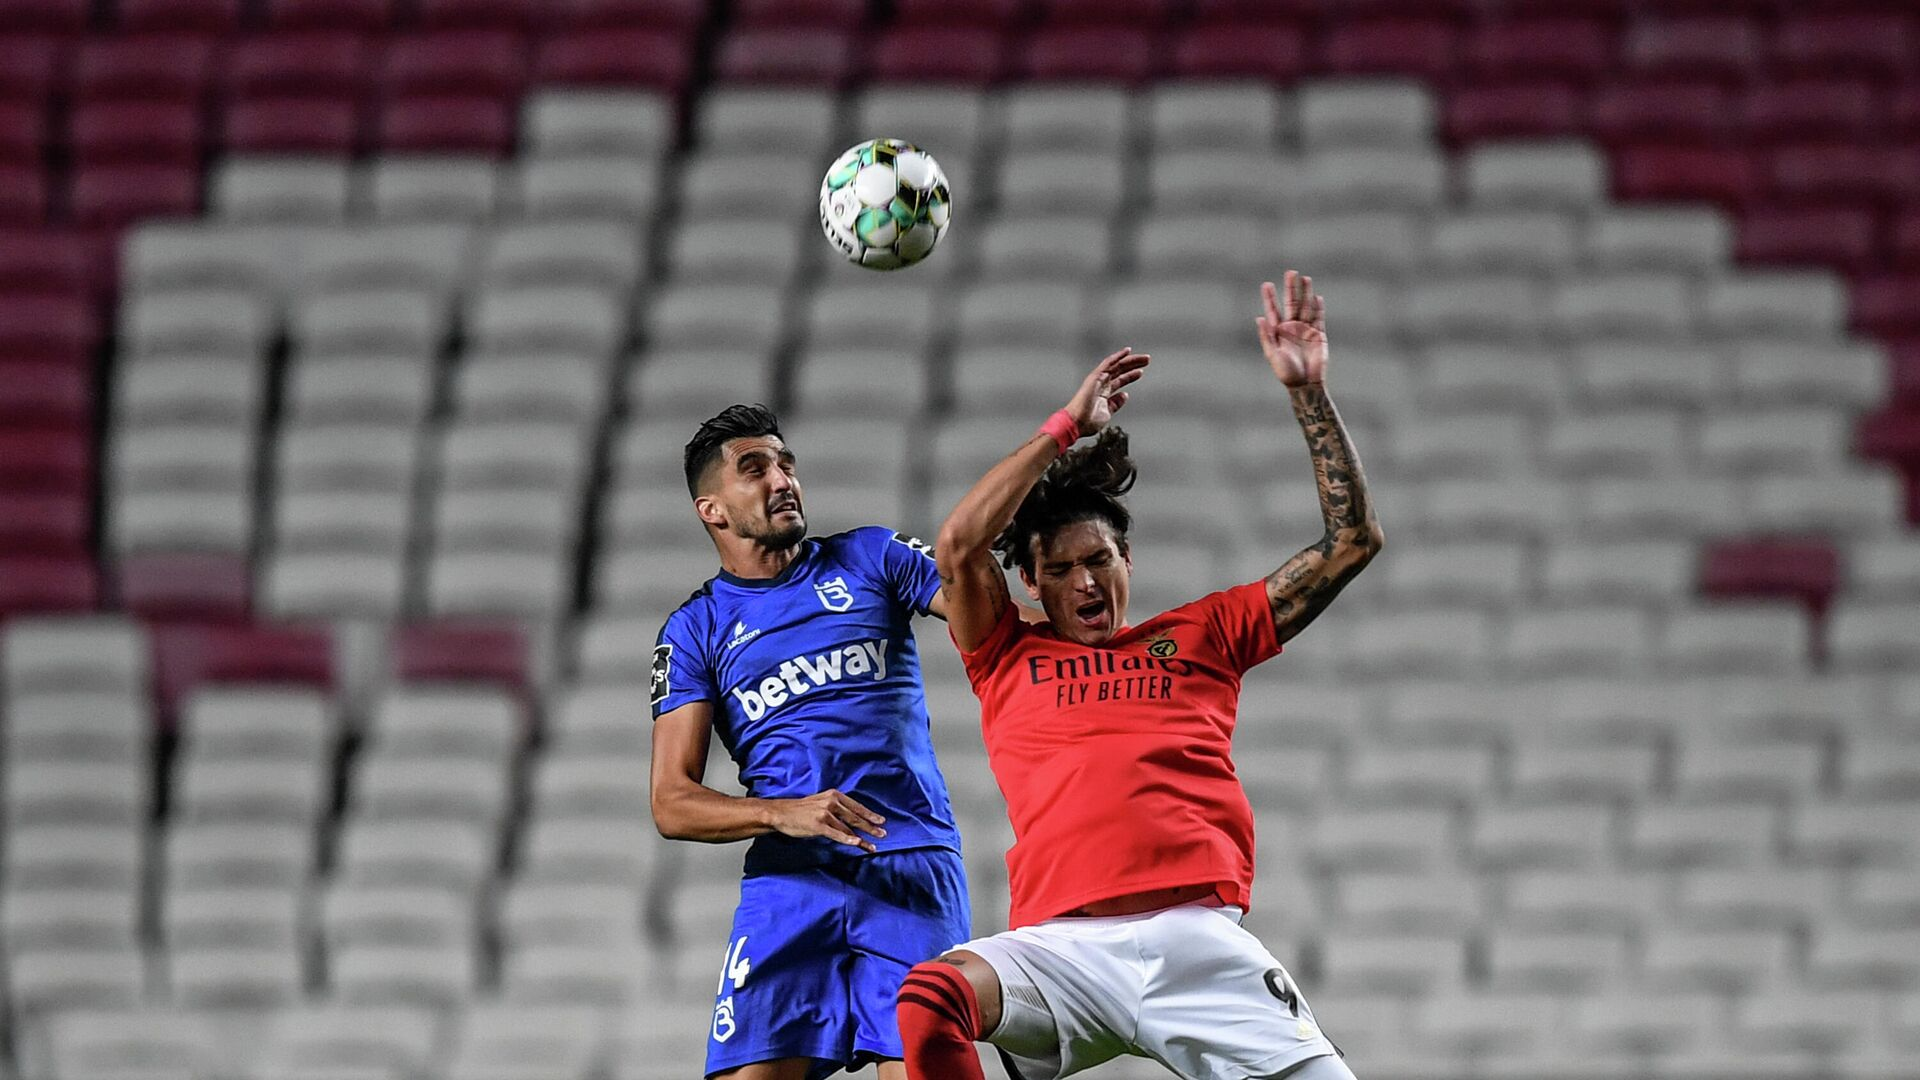 Benfica's Uruguayan forward Darwin Nunez (R) heads the ball with Belenenses' Portuguese defender Danny Henriques during the Portuguese League football match between SL Benfica and Belenenses SAD at the Luz stadium in Lisbon on October 26, 2020. (Photo by PATRICIA DE MELO MOREIRA / AFP) - РИА Новости, 1920, 27.10.2020